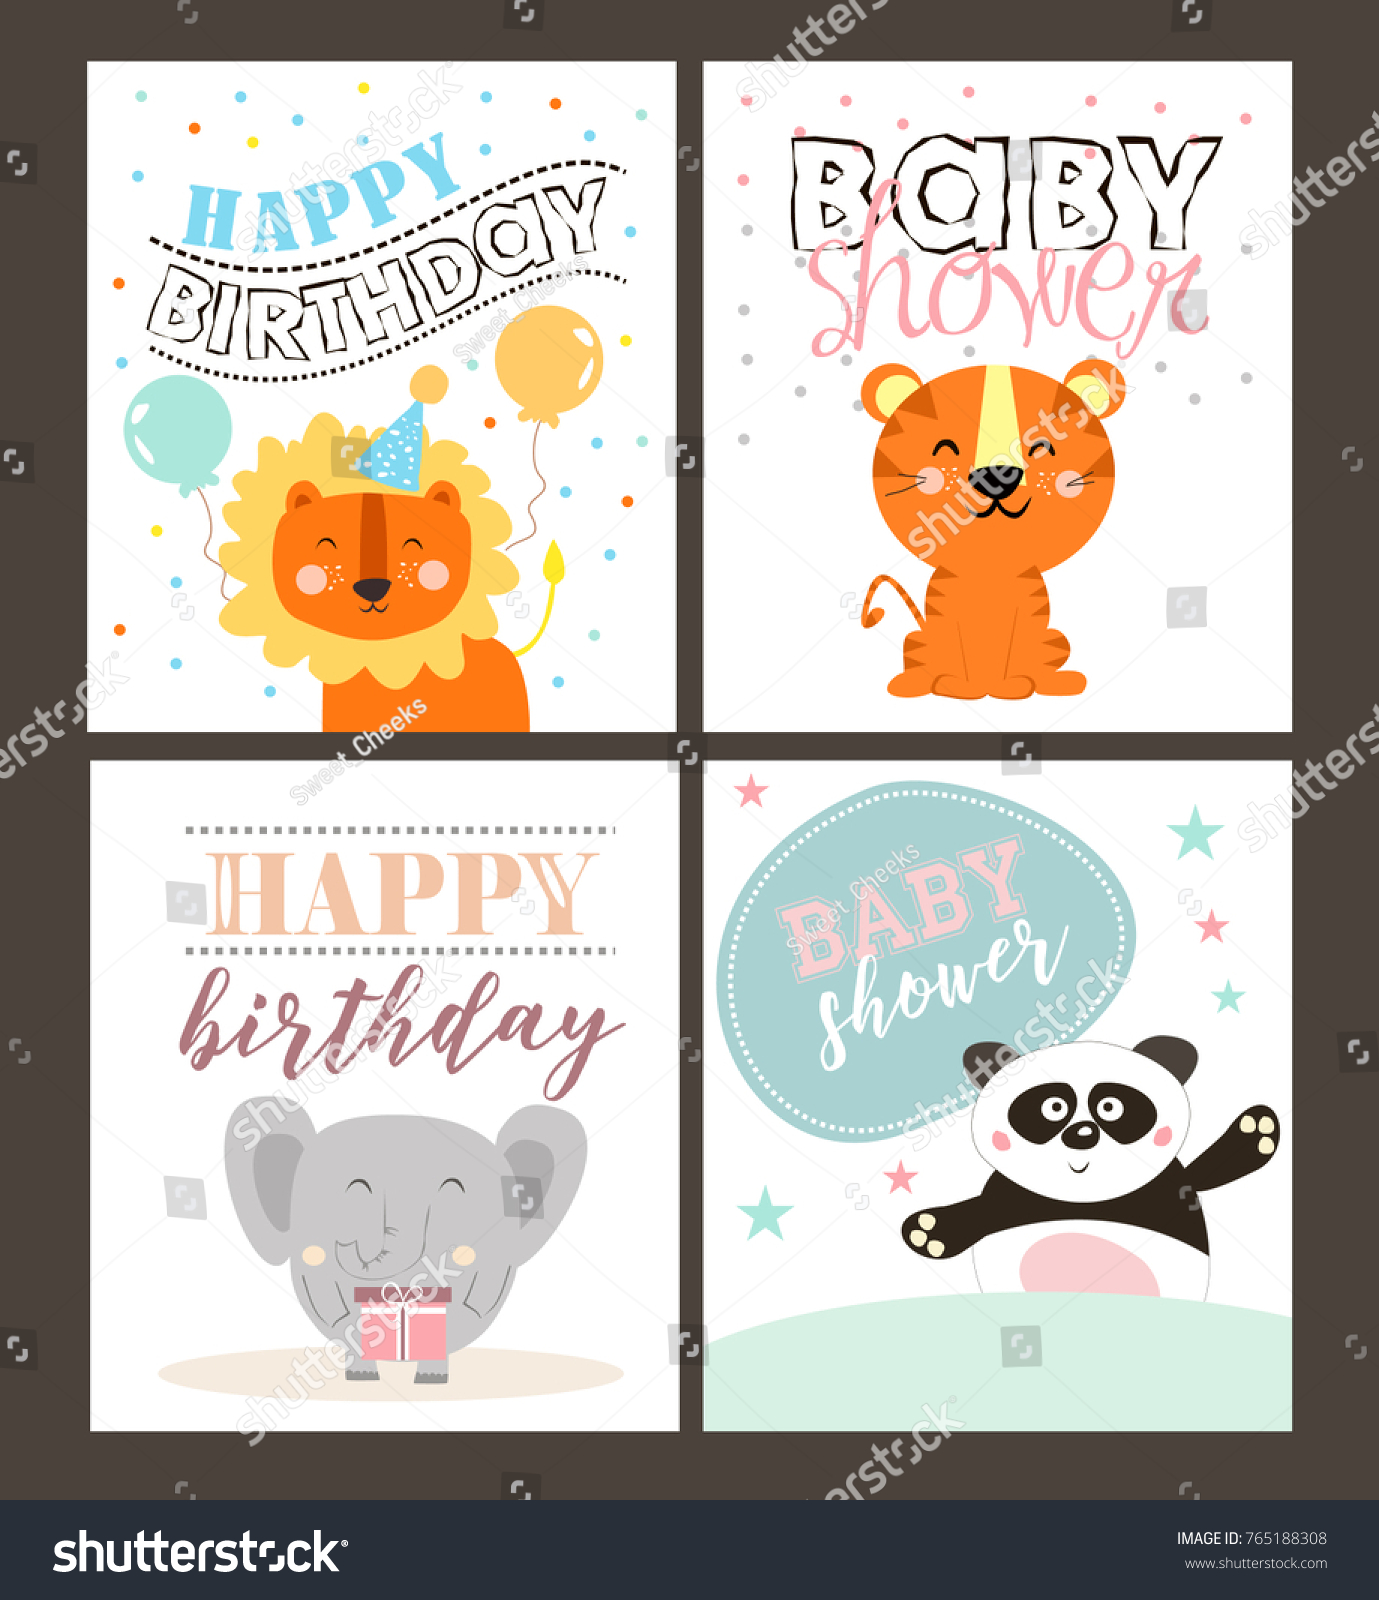 Jungle party invitation card stock vector 765188308 shutterstock jungle party invitation card stopboris Choice Image